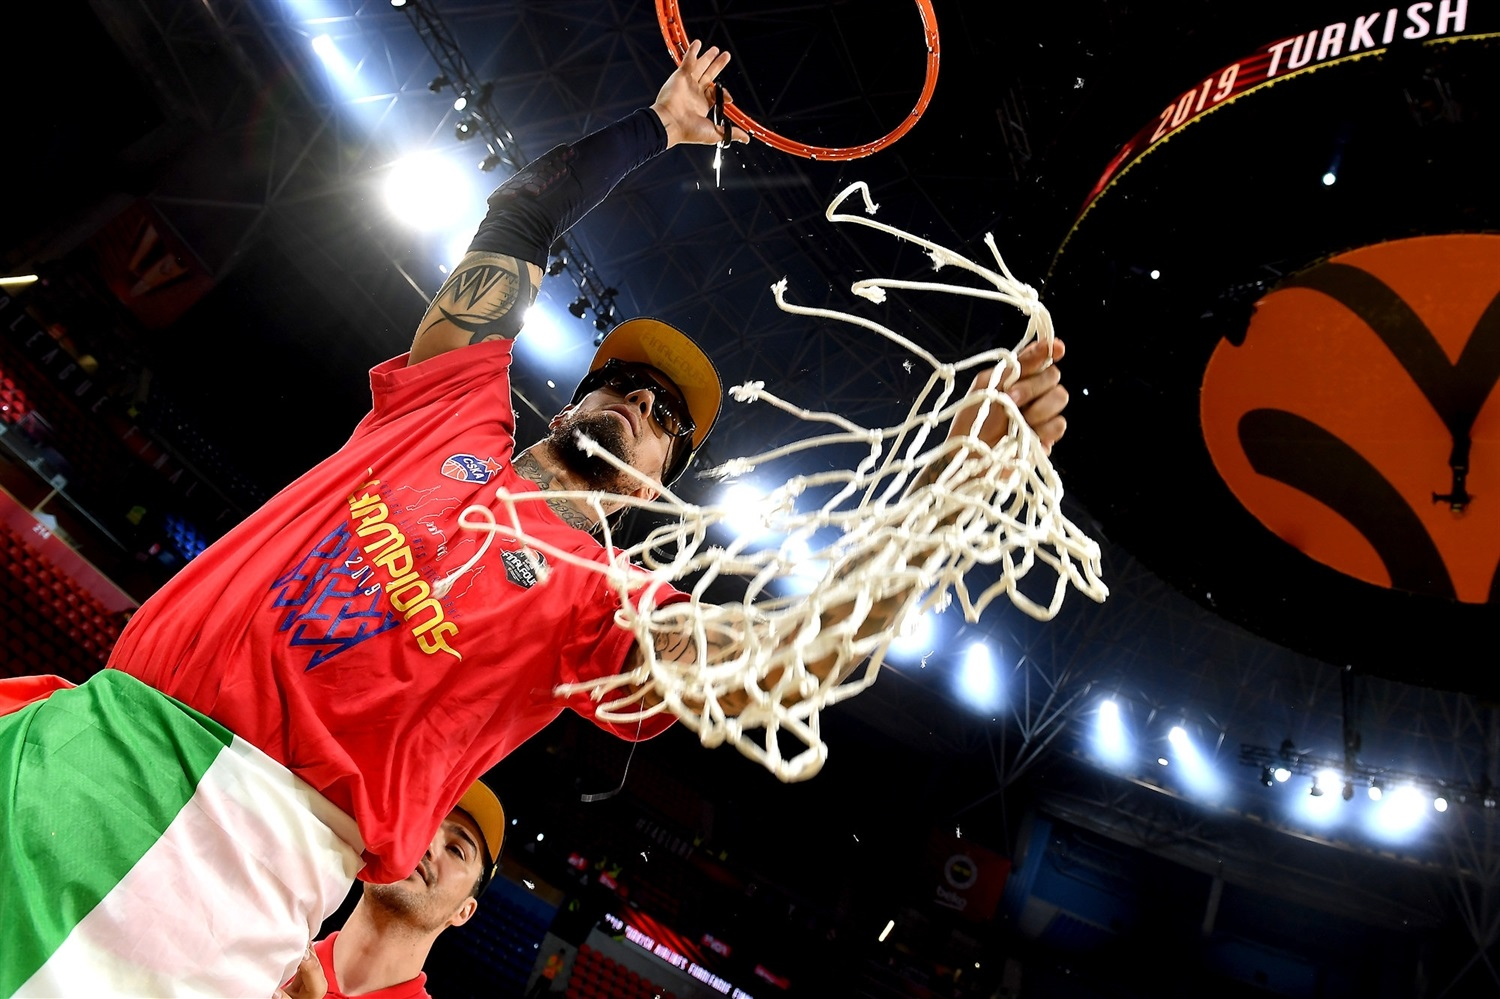 Daniel Hackett - CSKA Moscow Champ - Final Four Vitoria-Gasteiz 2019 - EB18